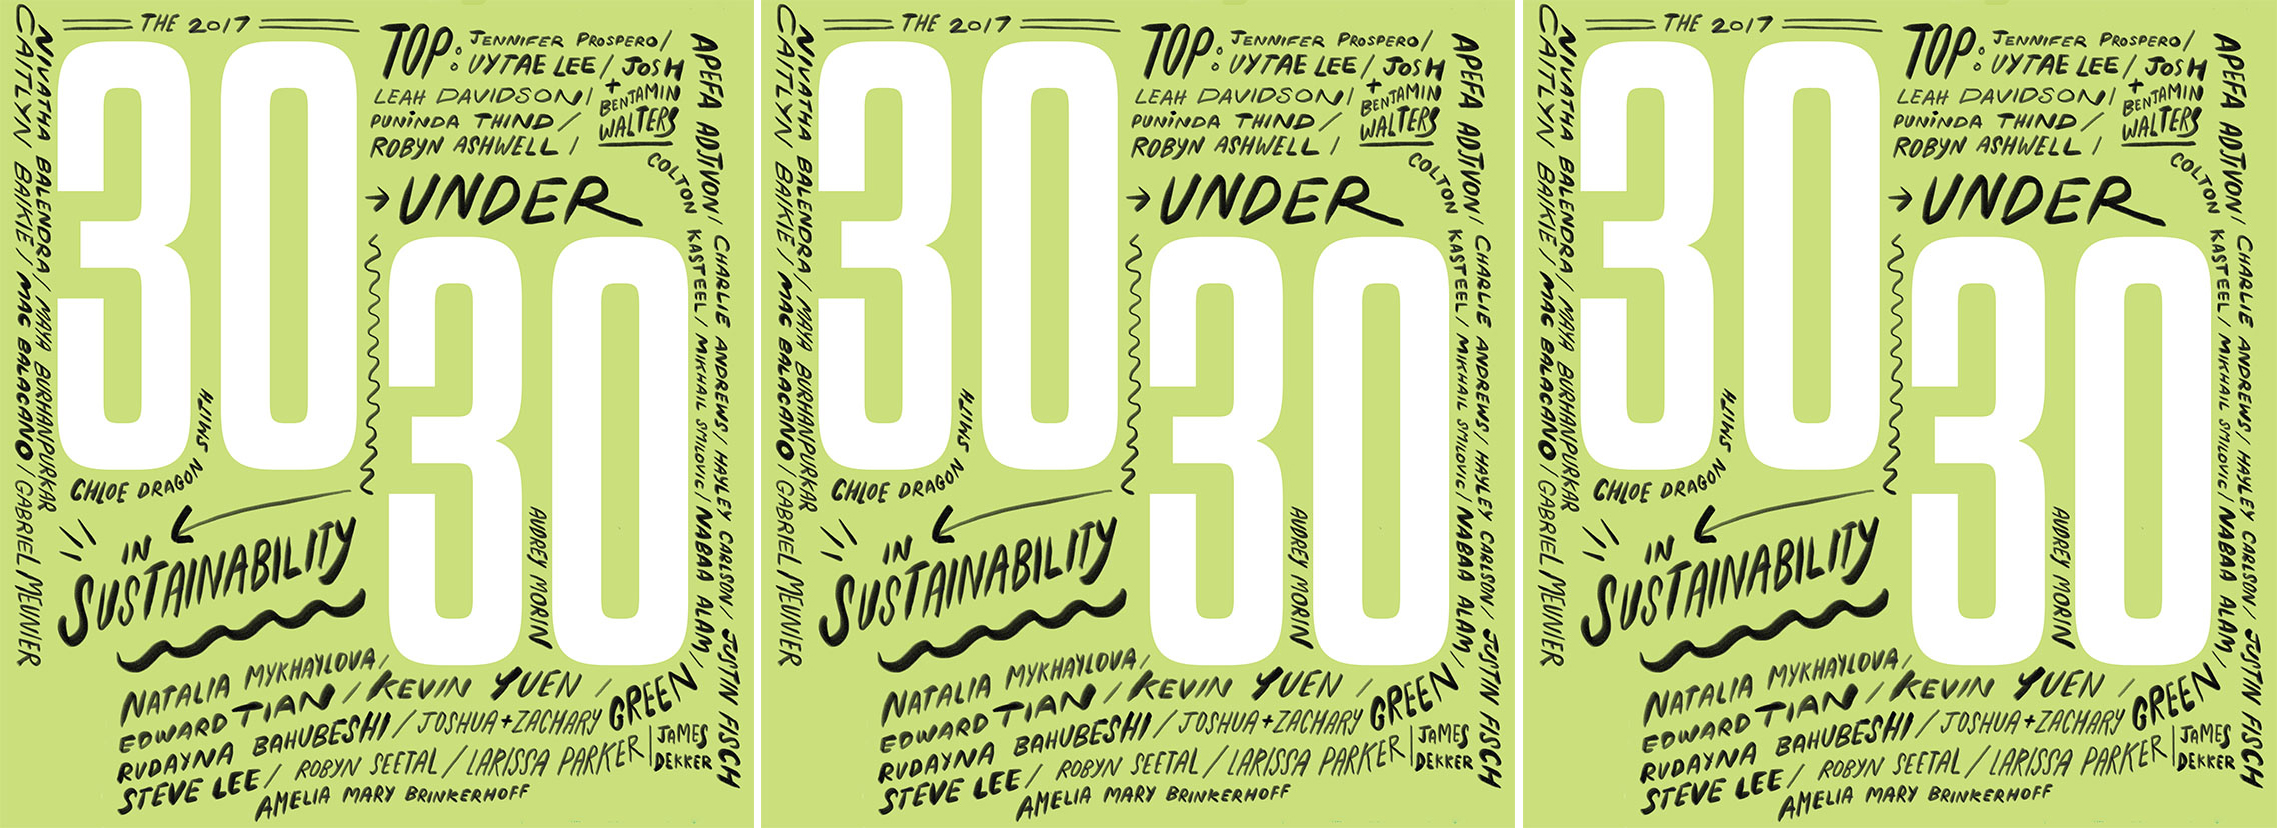 30under30 cover corporate knights